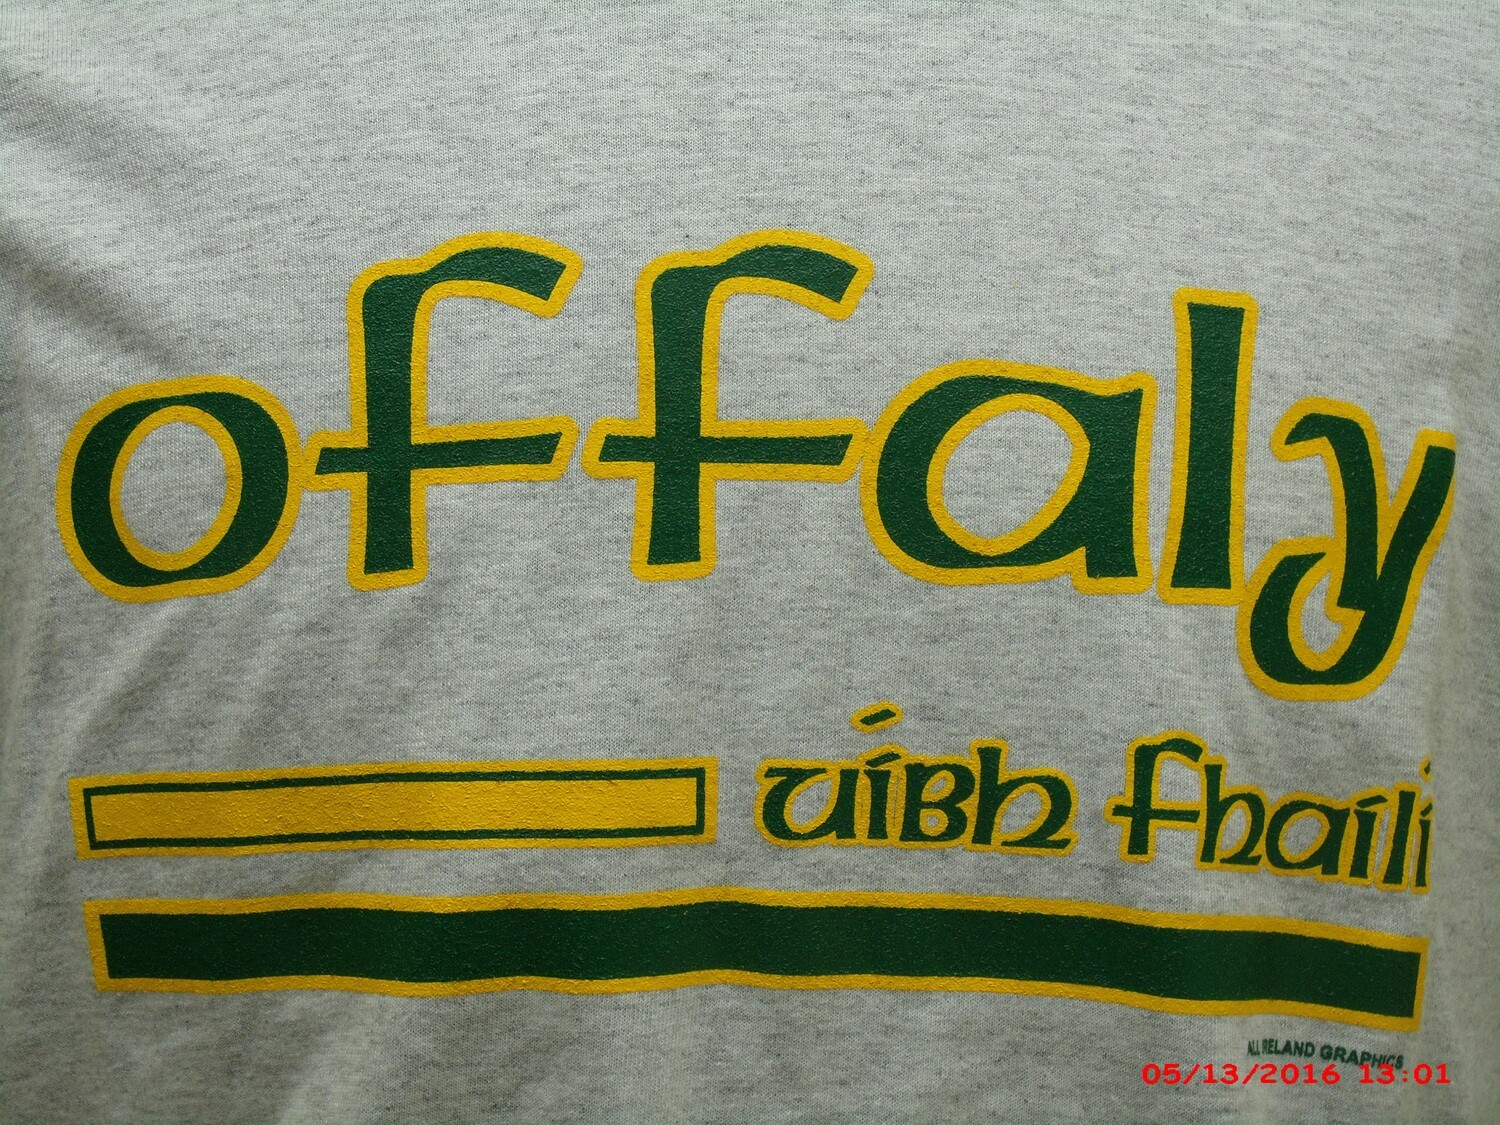 OFFALY COUNTY SWEAT